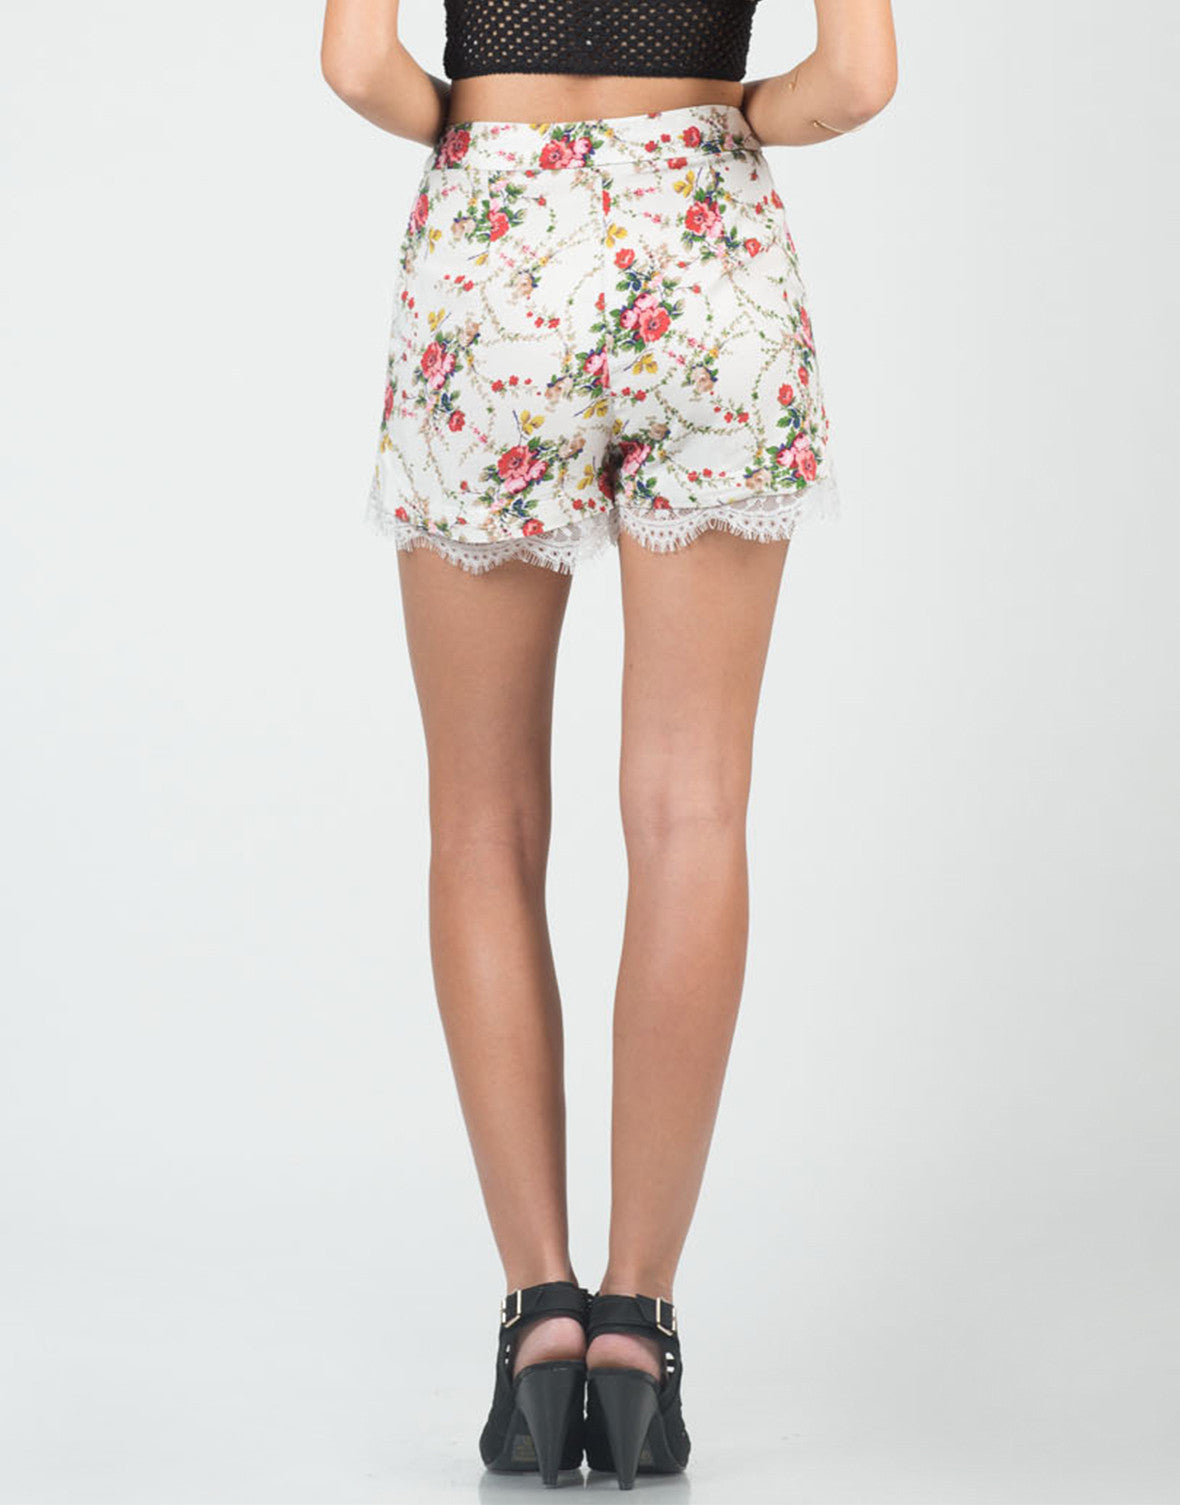 Back View of High Waisted Floral Lace Shorts